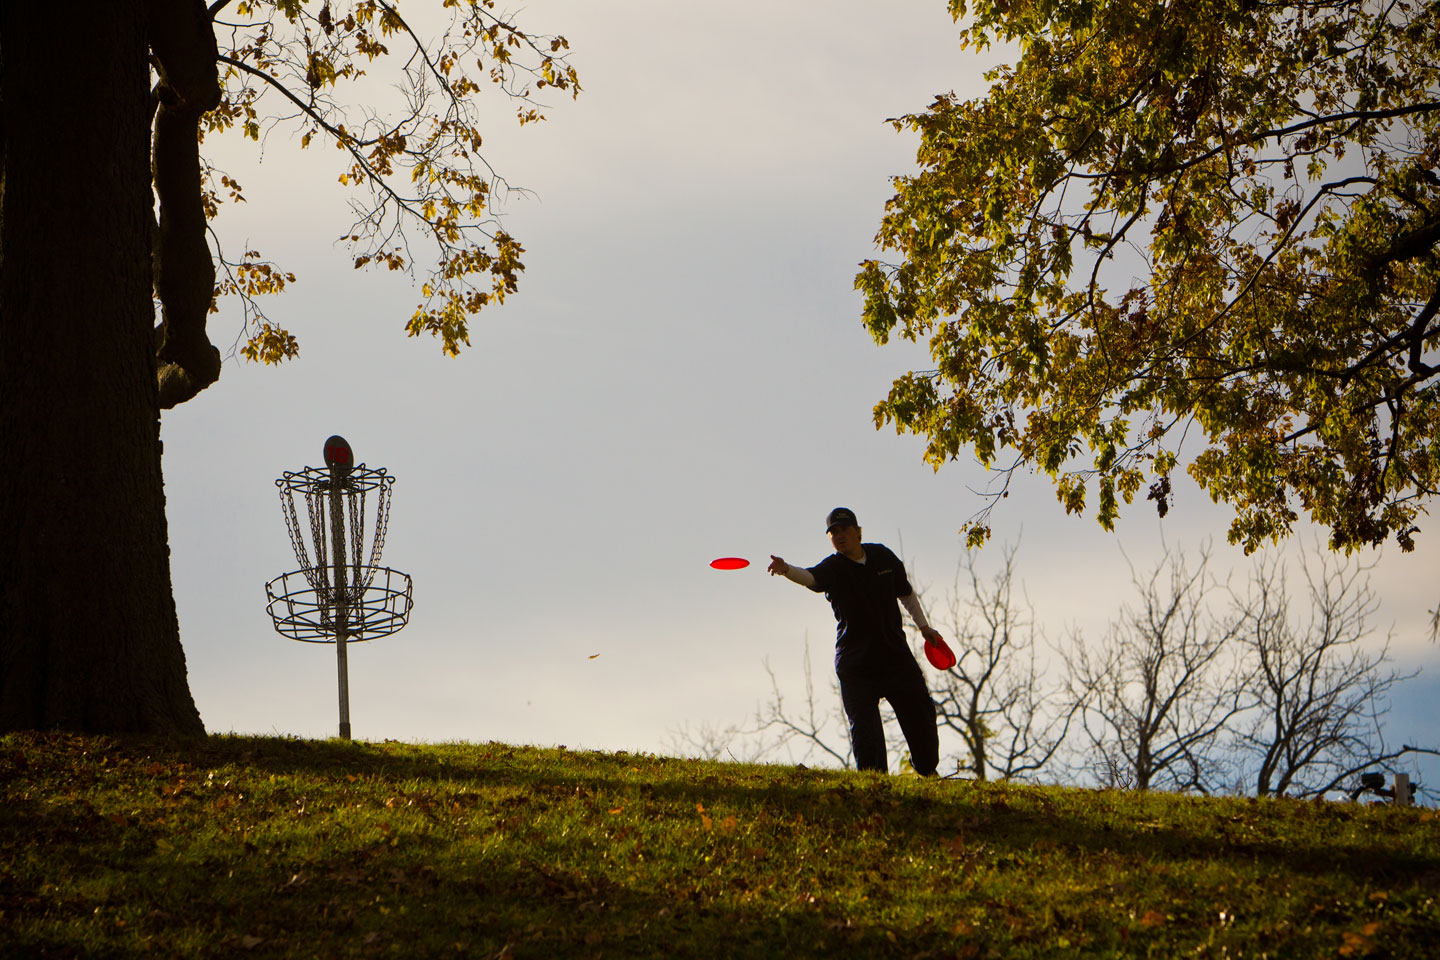 Longview Park Disc Golf